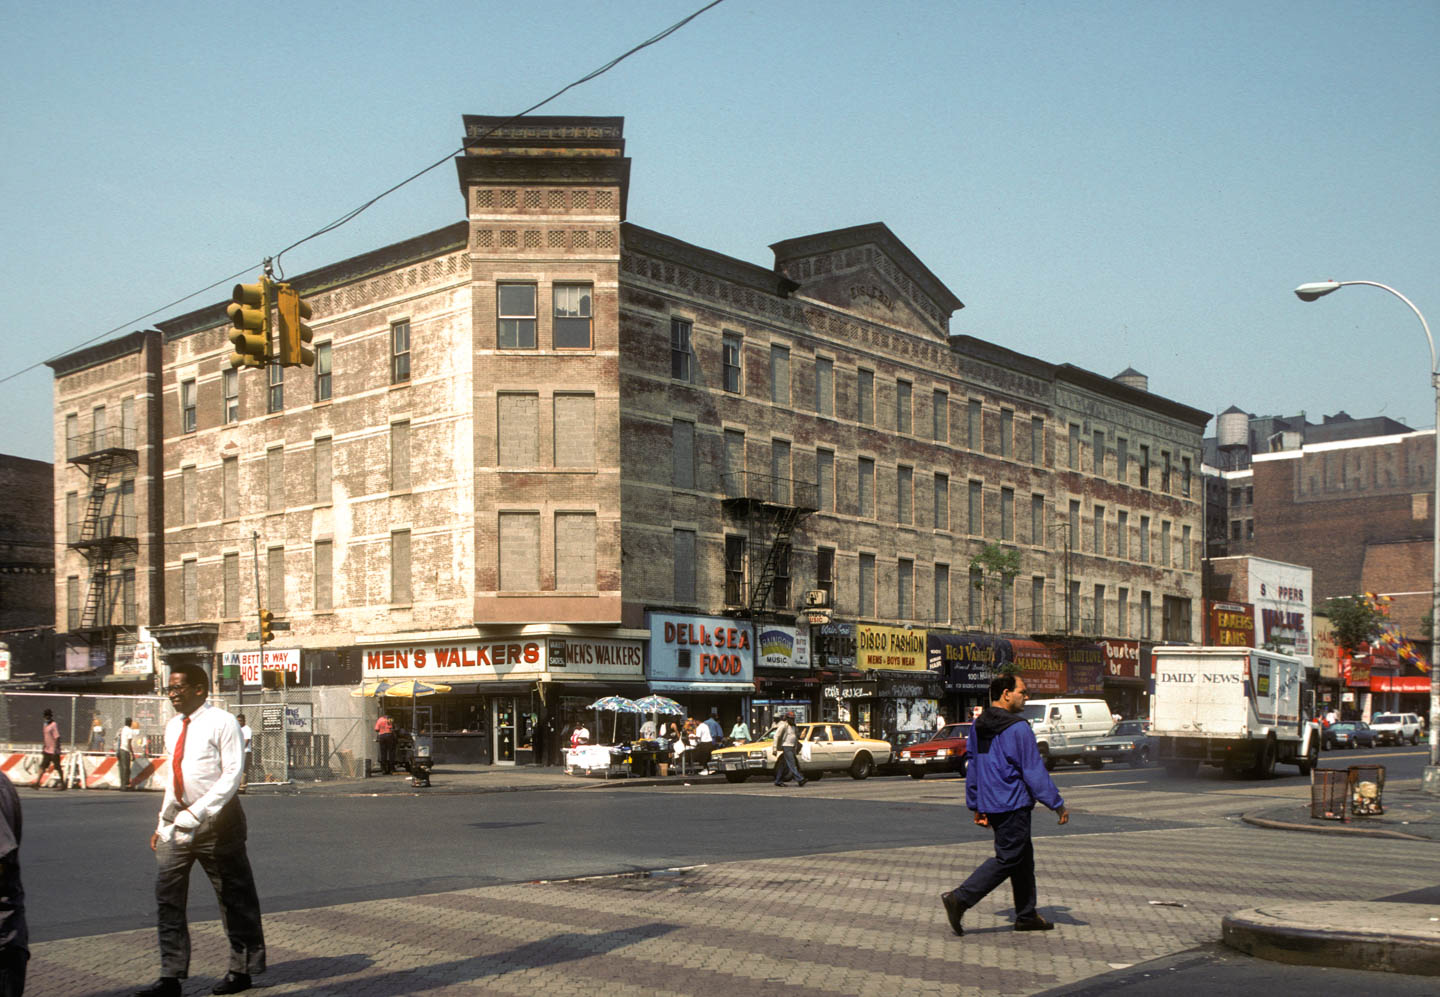 2-48-SW corner of Malcolm X Blvd. and W. 125th St., 1993_